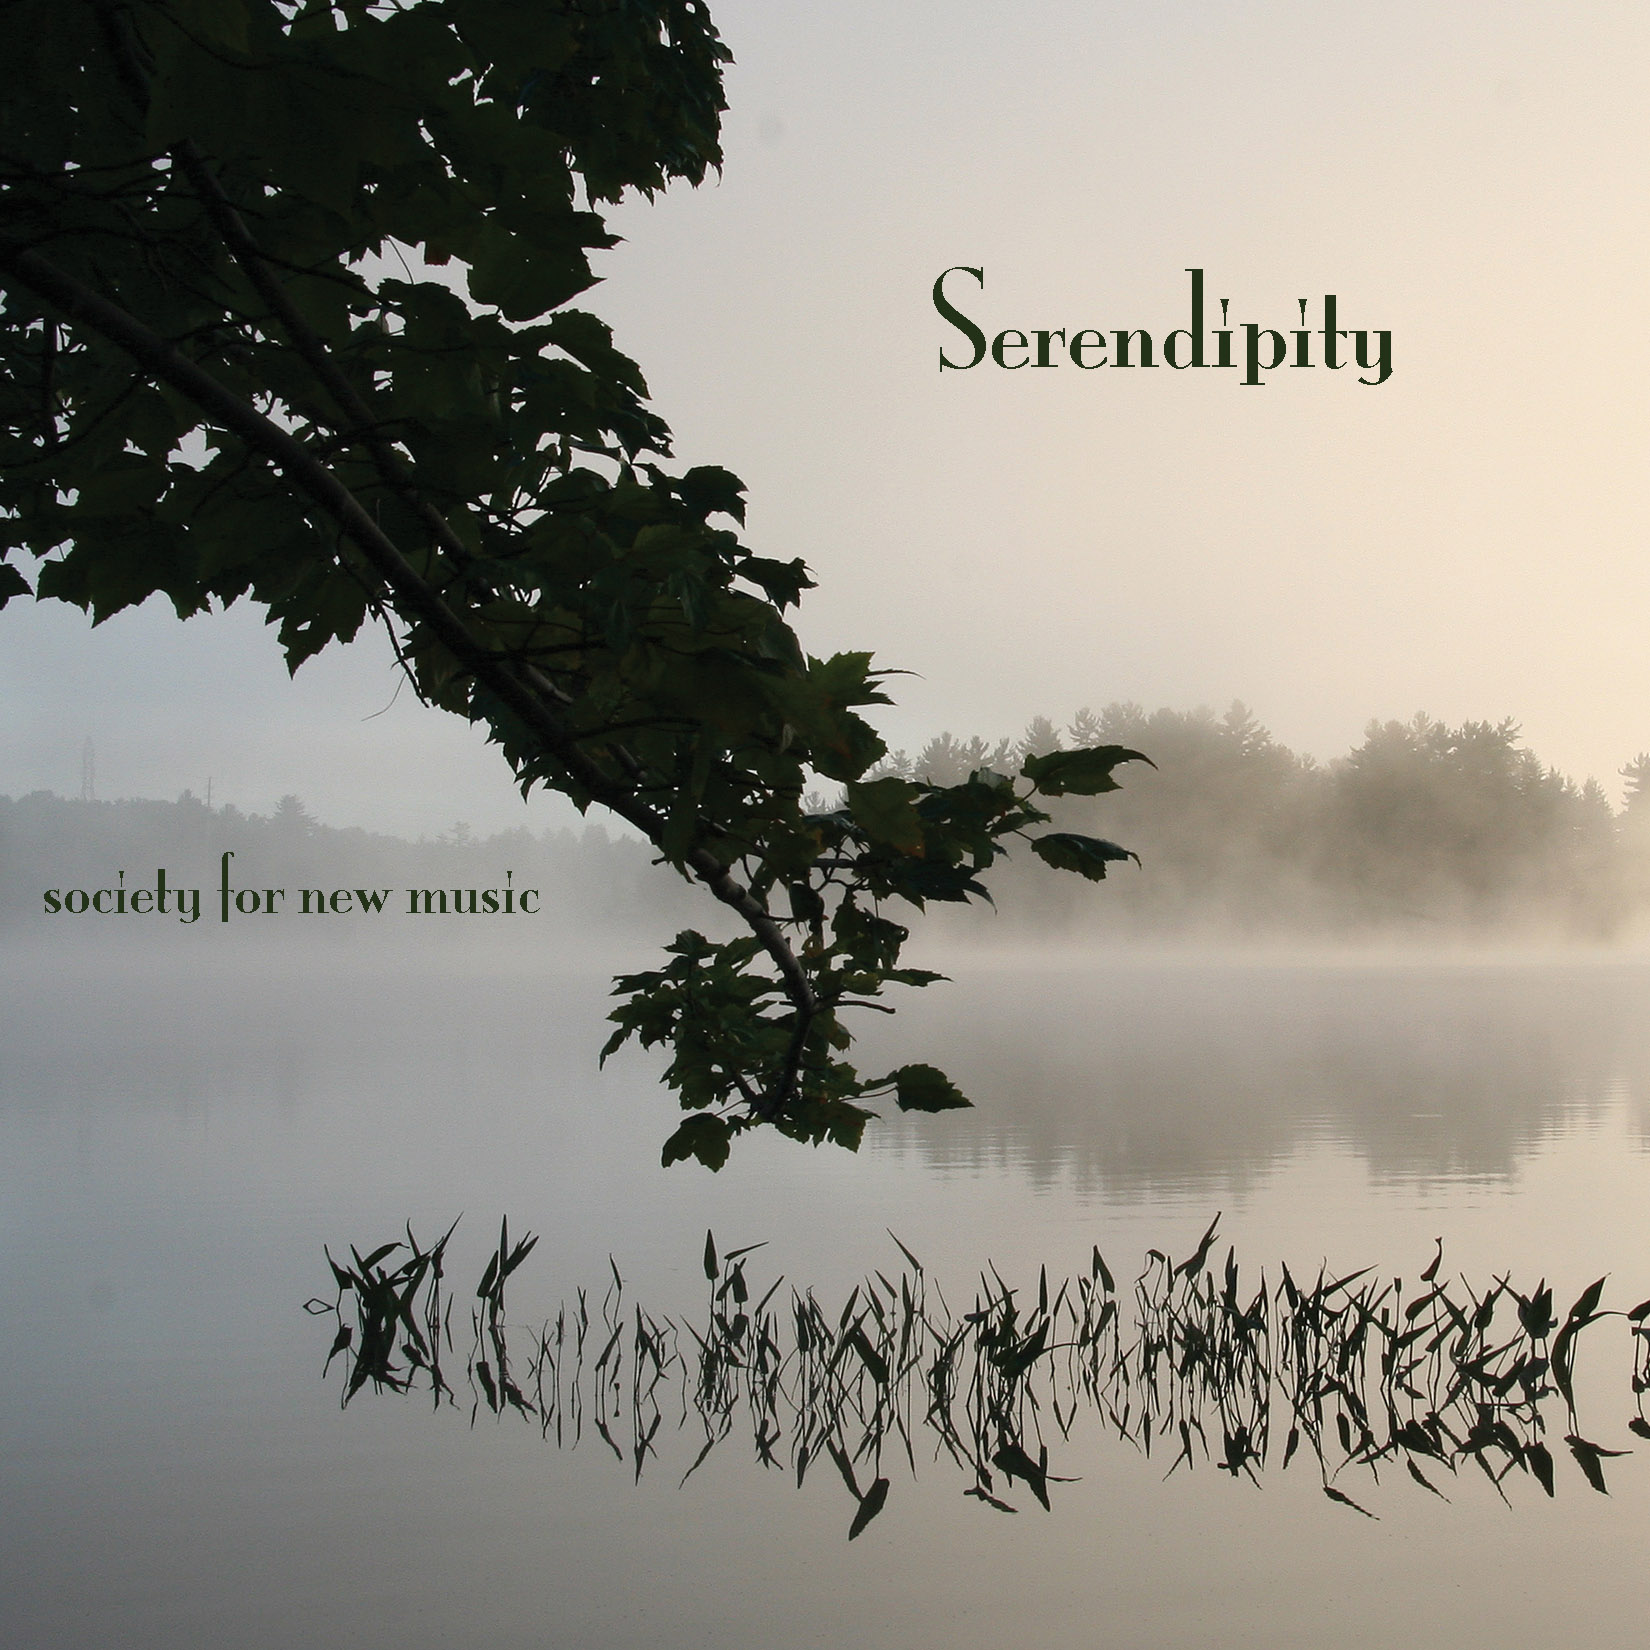 Serendipity, Society for New Music